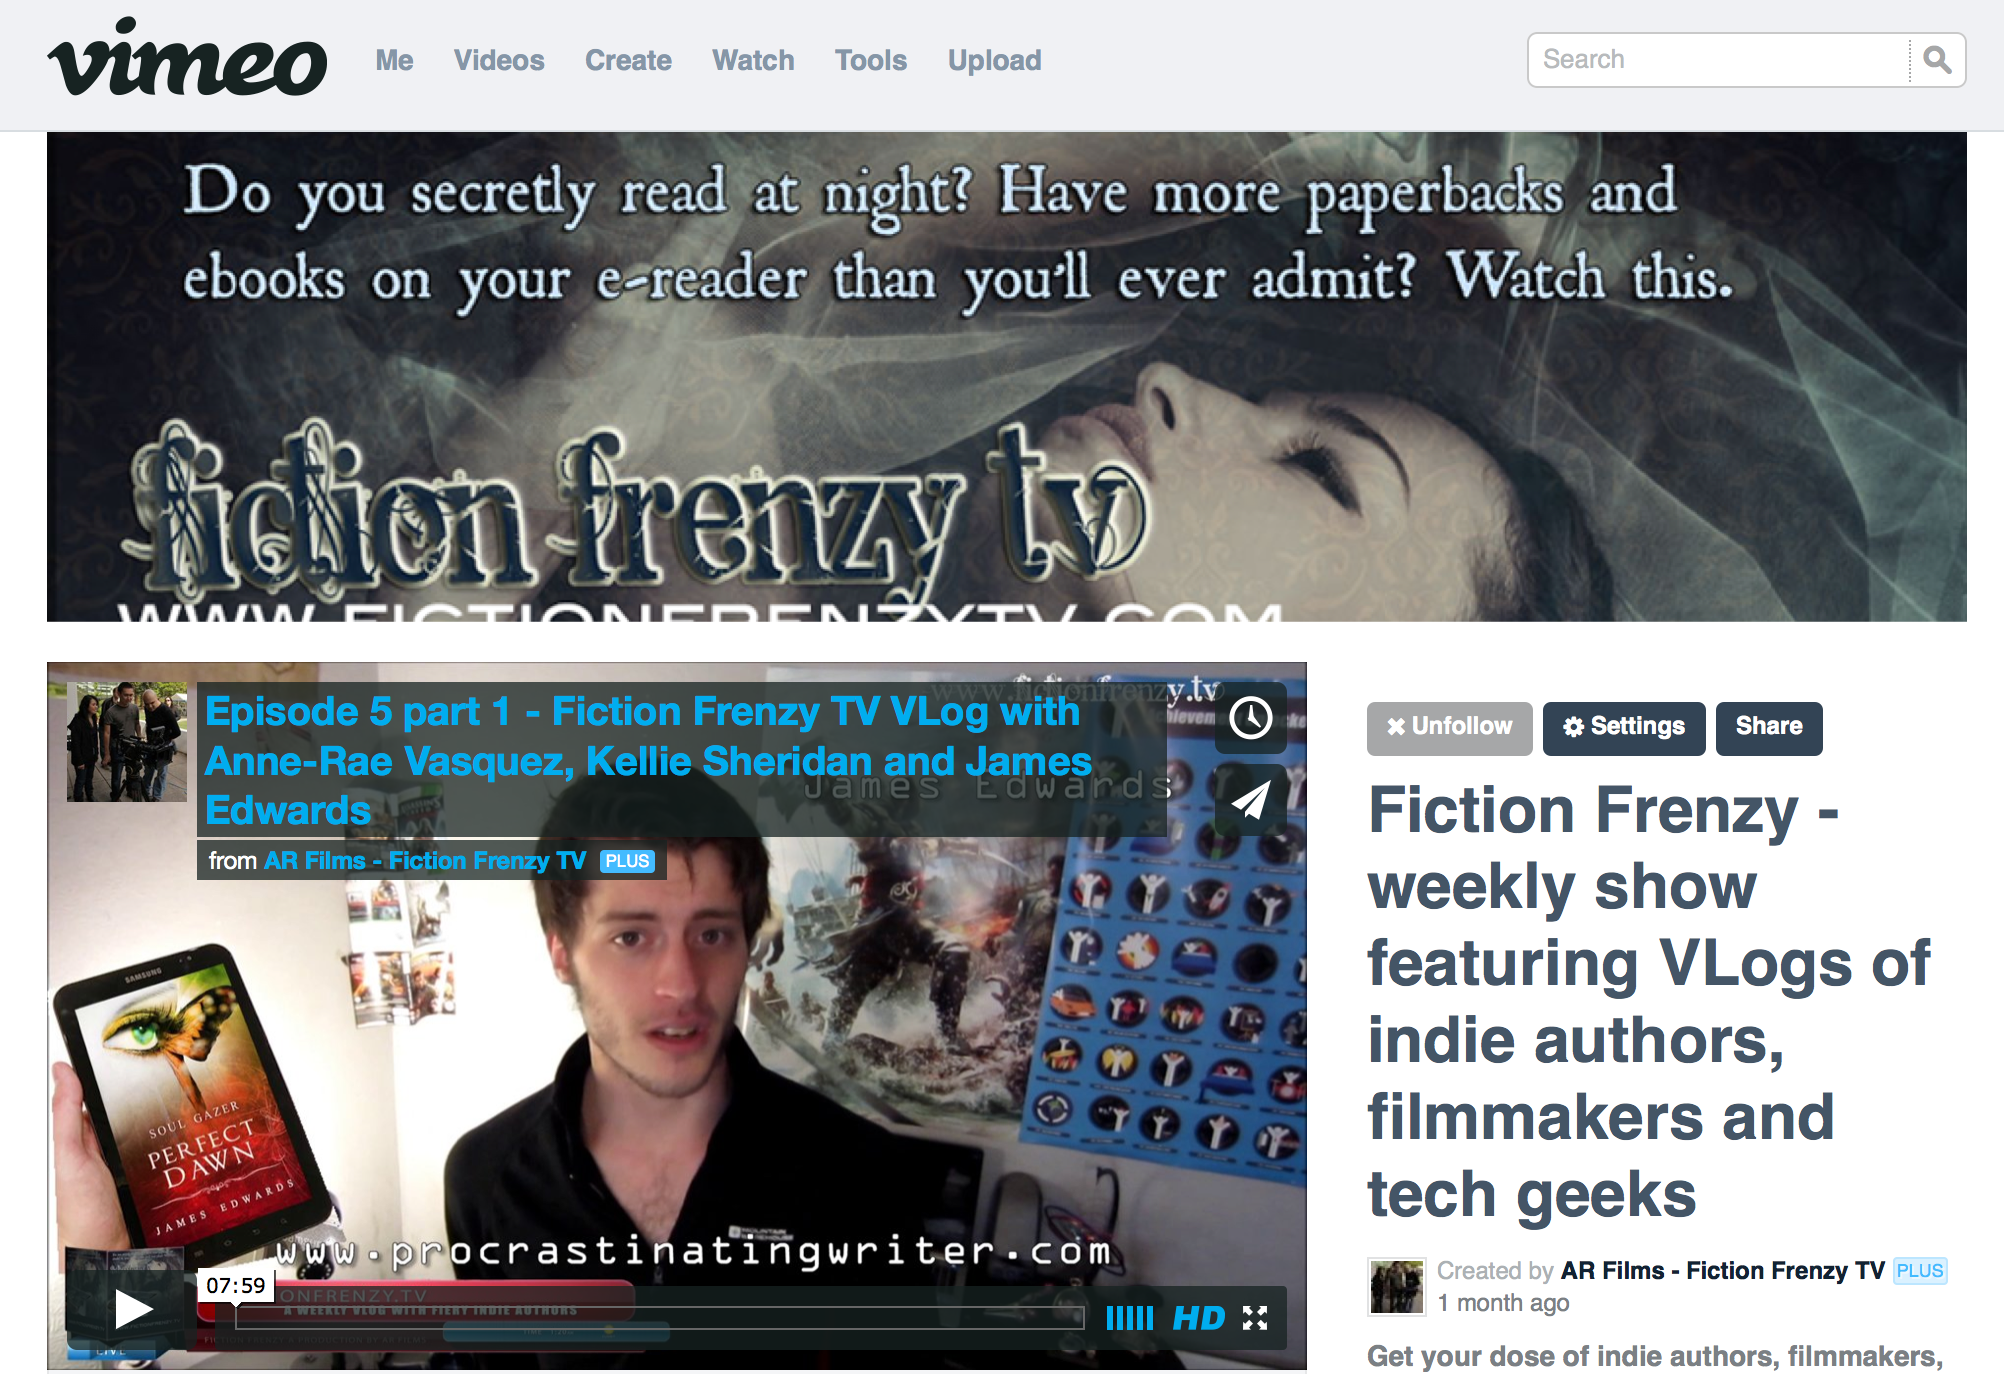 Vimeo Fiction Frenzy TV Vlog channel